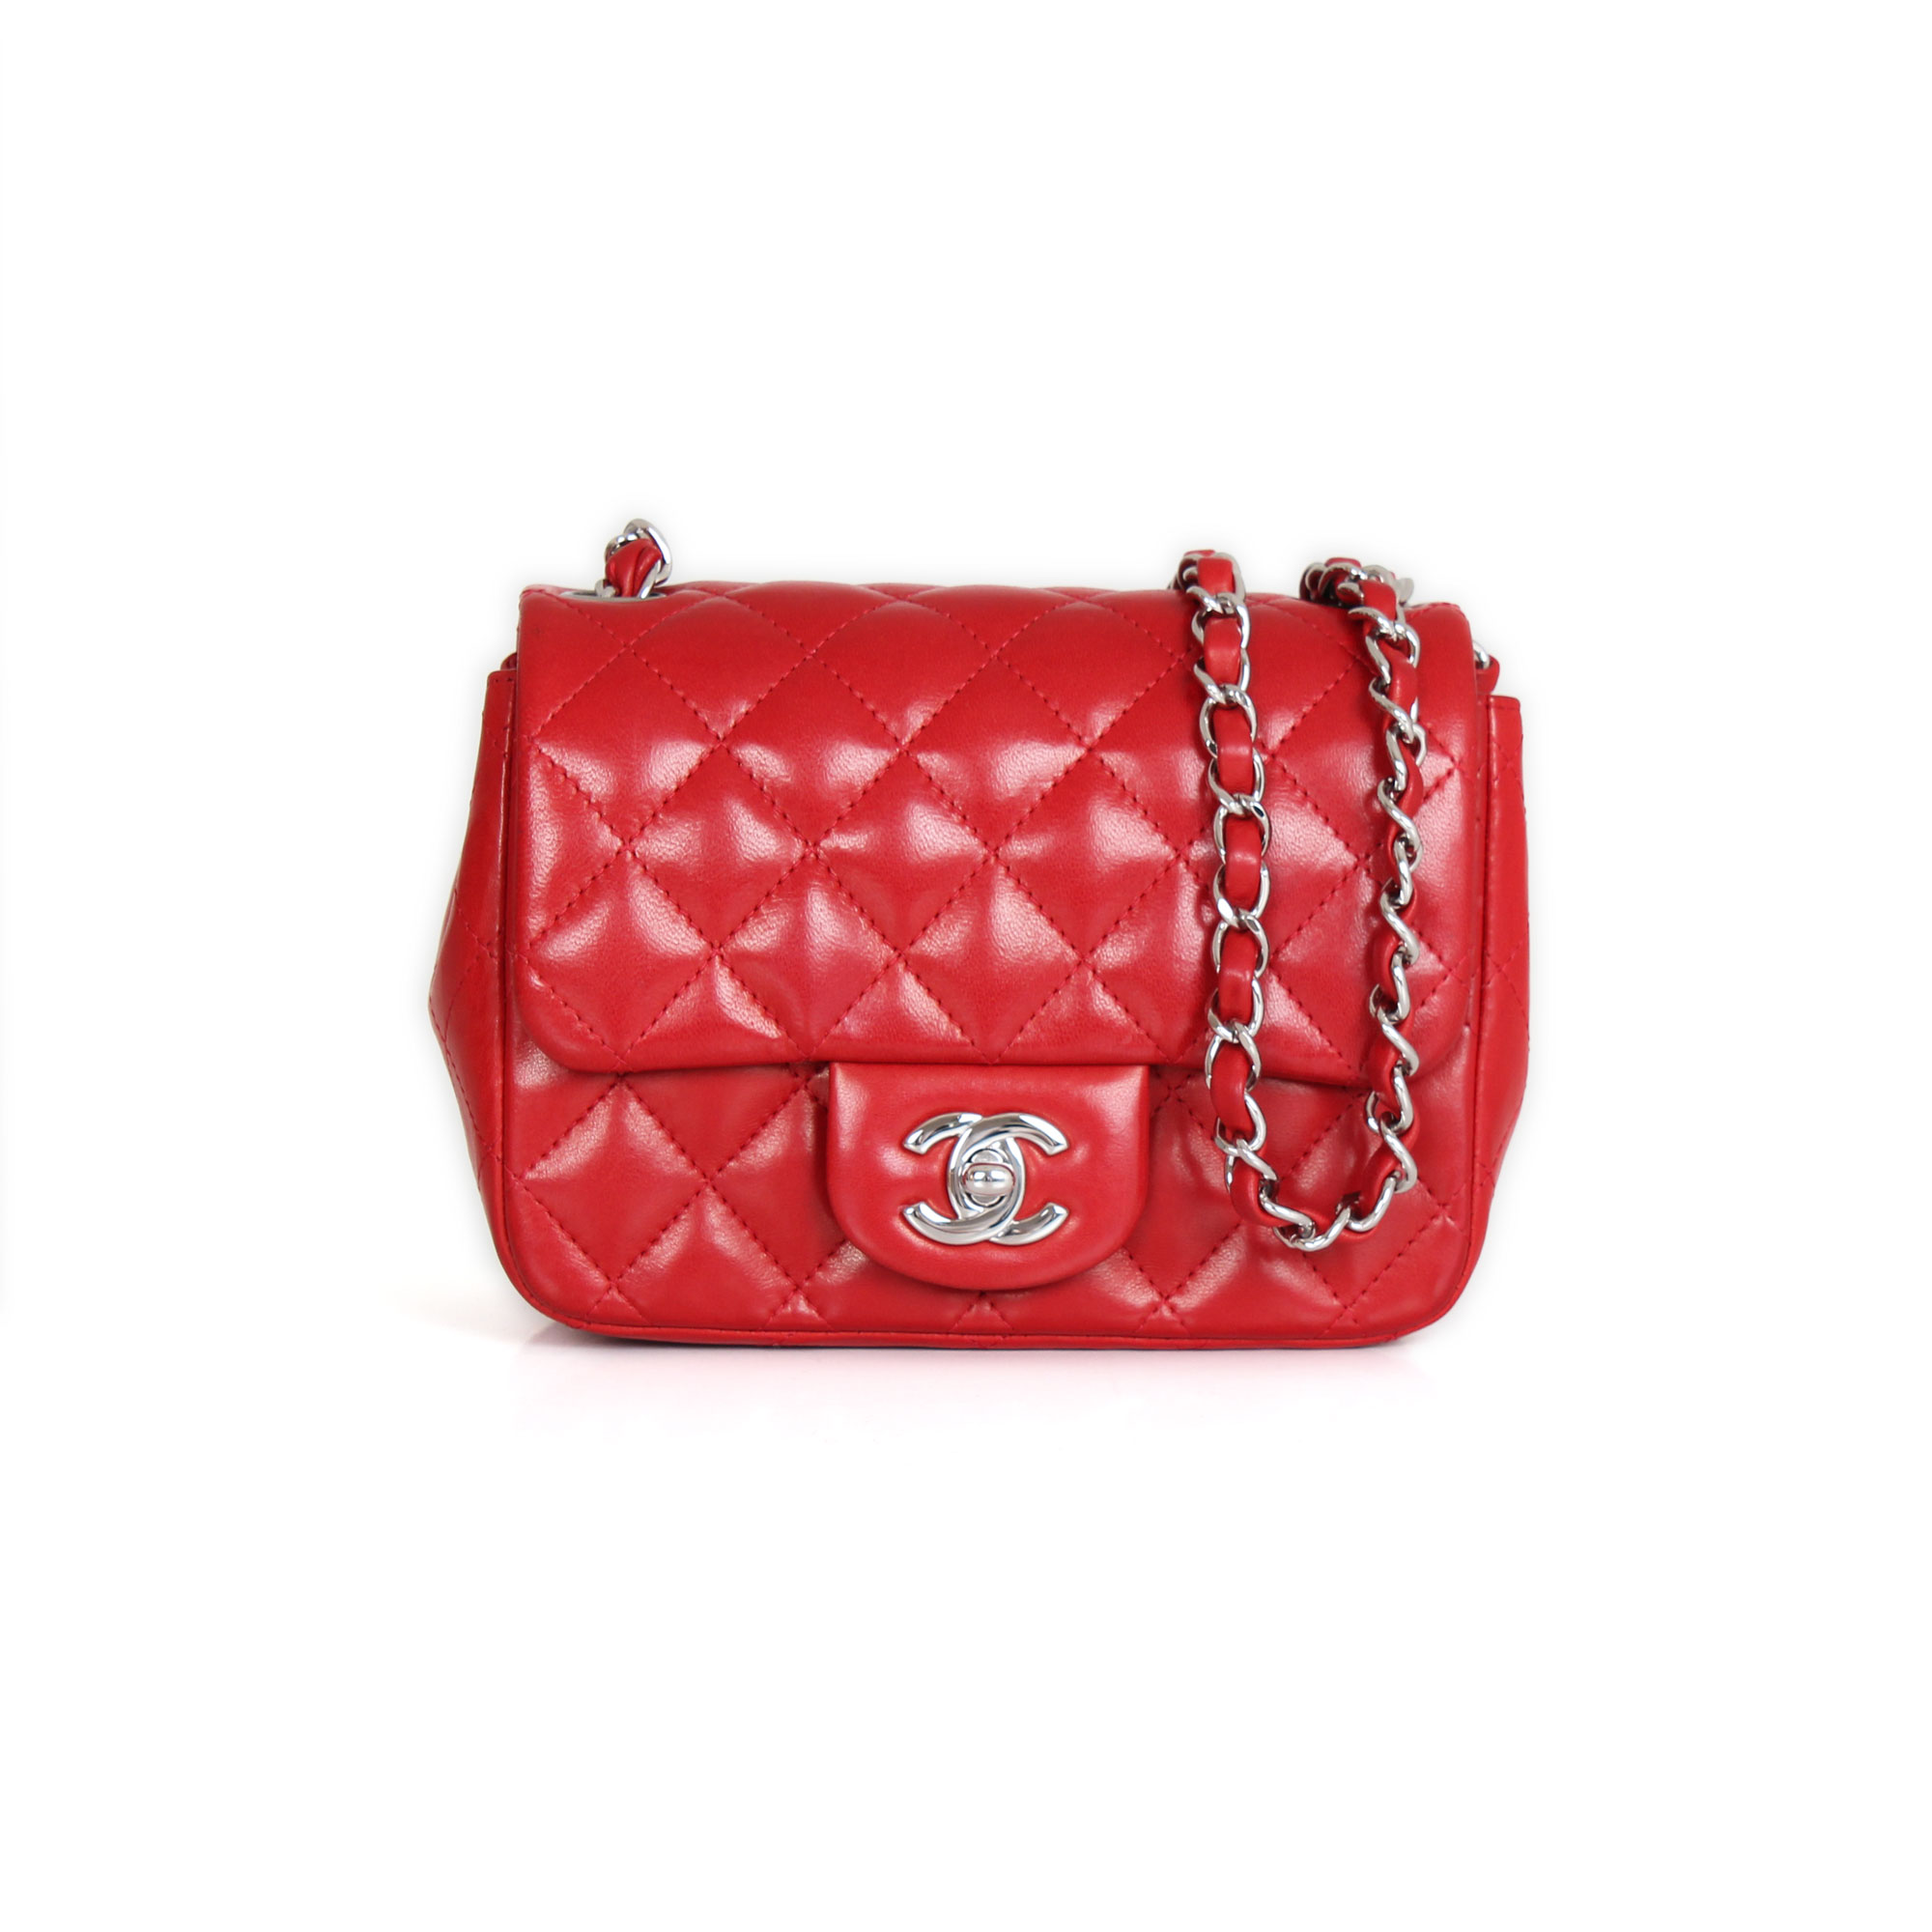 4b4b7e869c3c Chanel Timeless Mini Square Red lambskin leather | CBL Bags